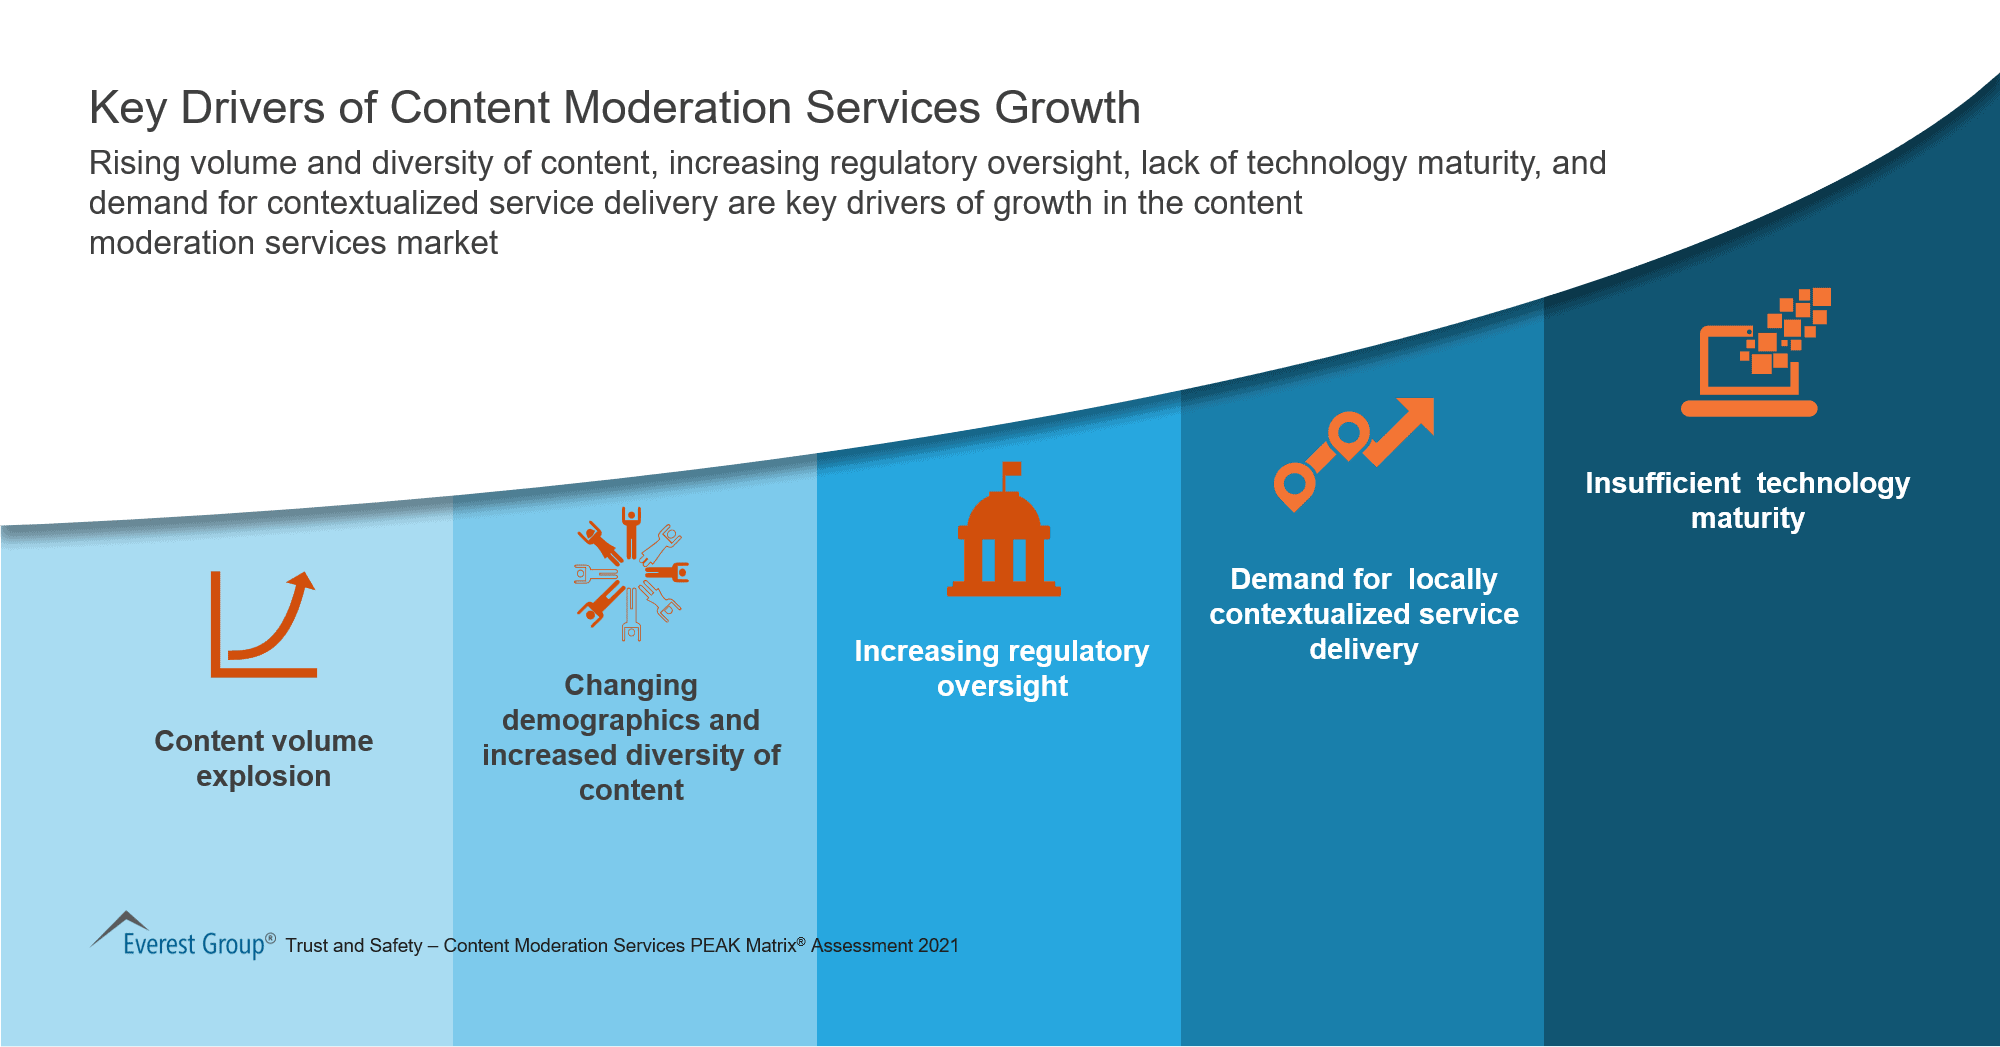 Key Drivers of Content Moderation Services Growth